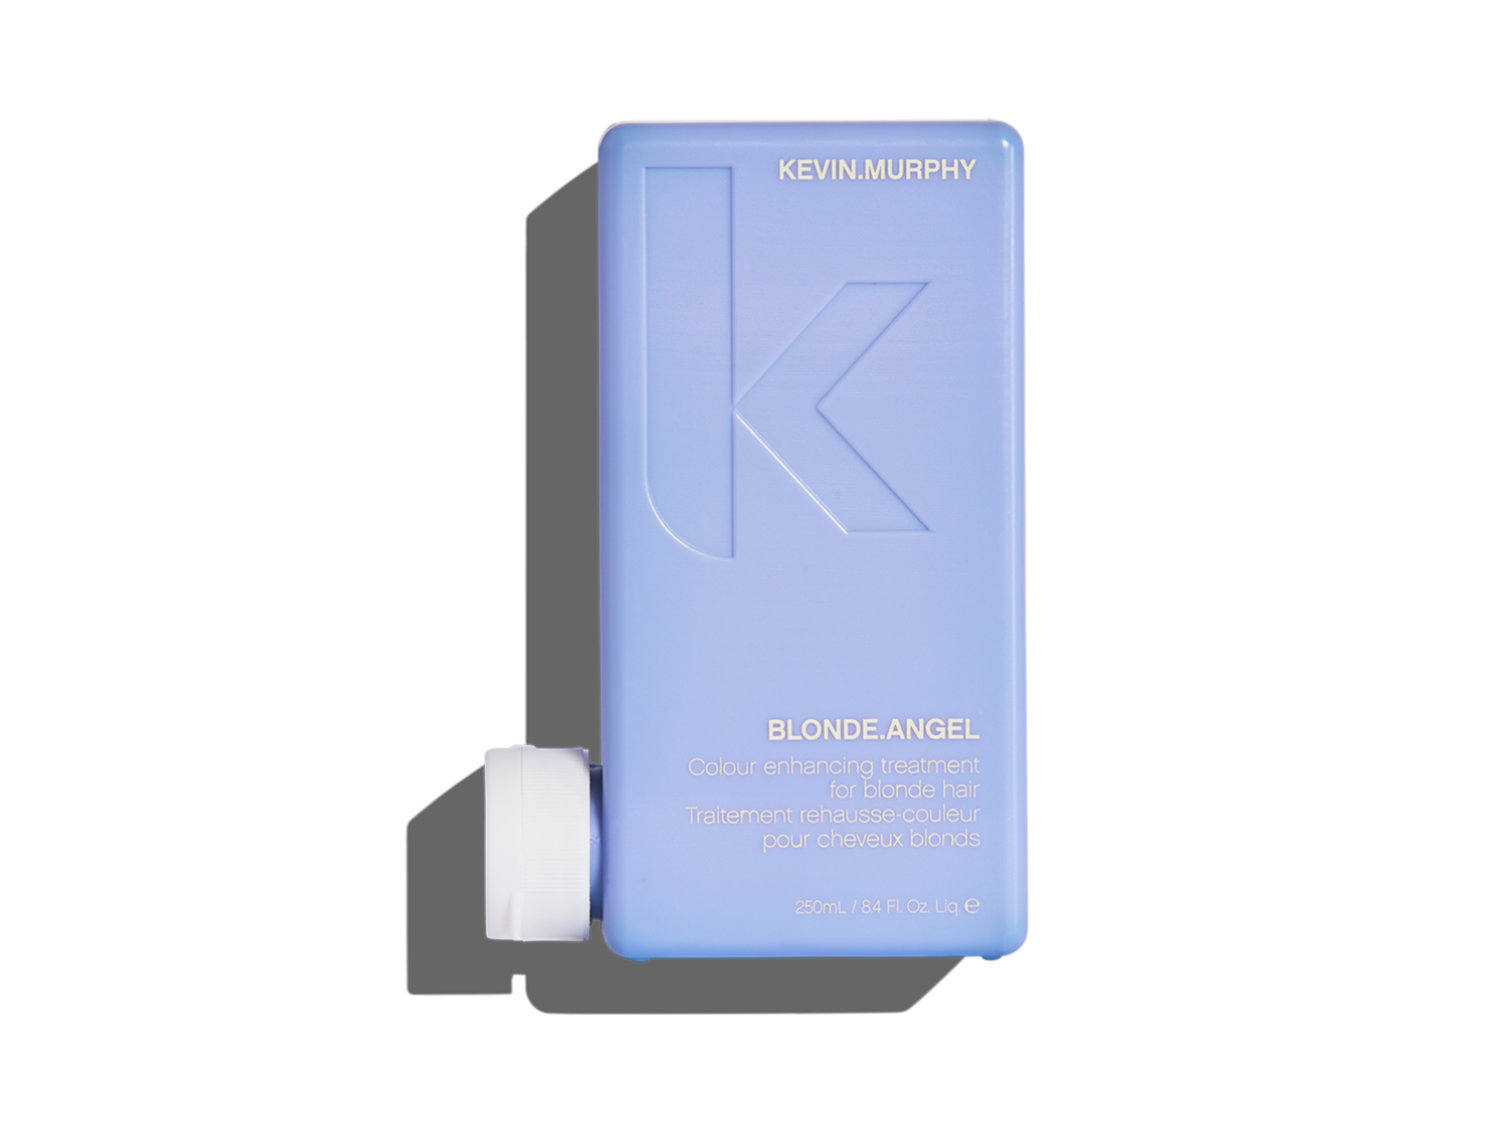 Arma Beauty - Kevin Murphy - BLONDE.ANGEL